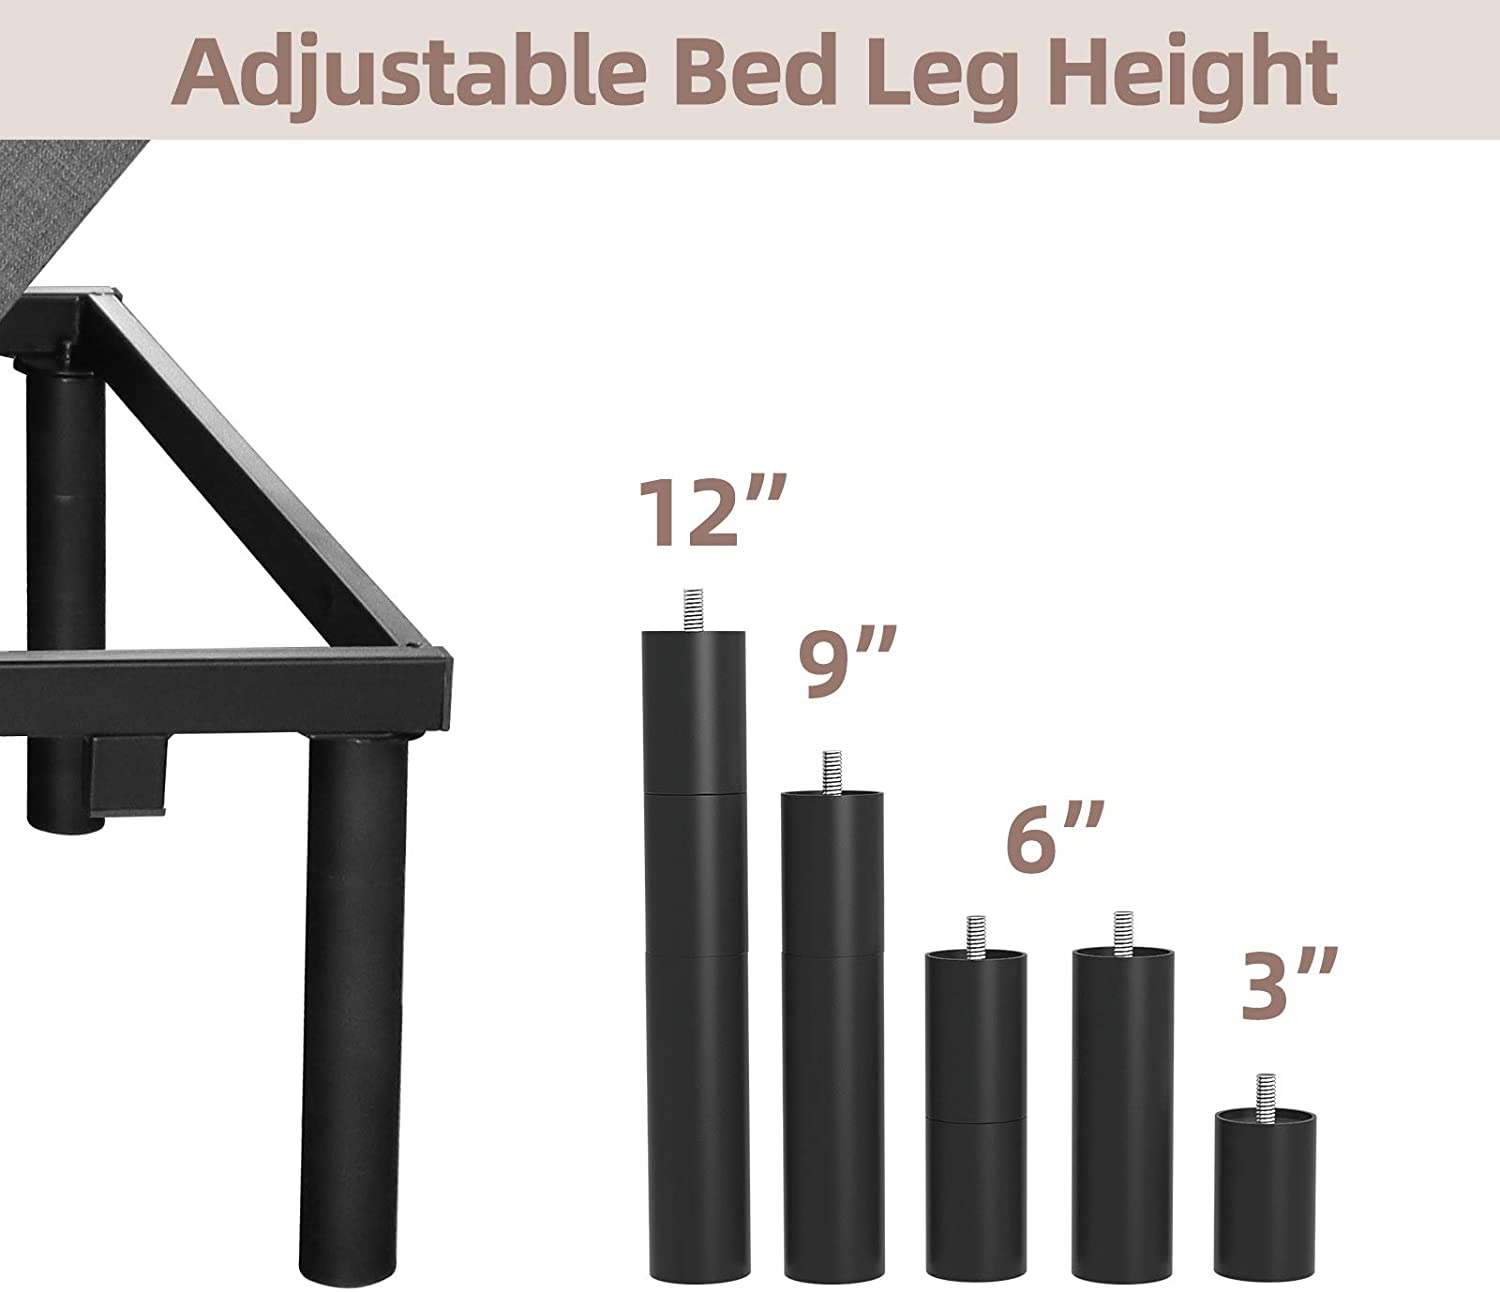 Mecor Adjustable Bed Frame Review - Height Adjustability